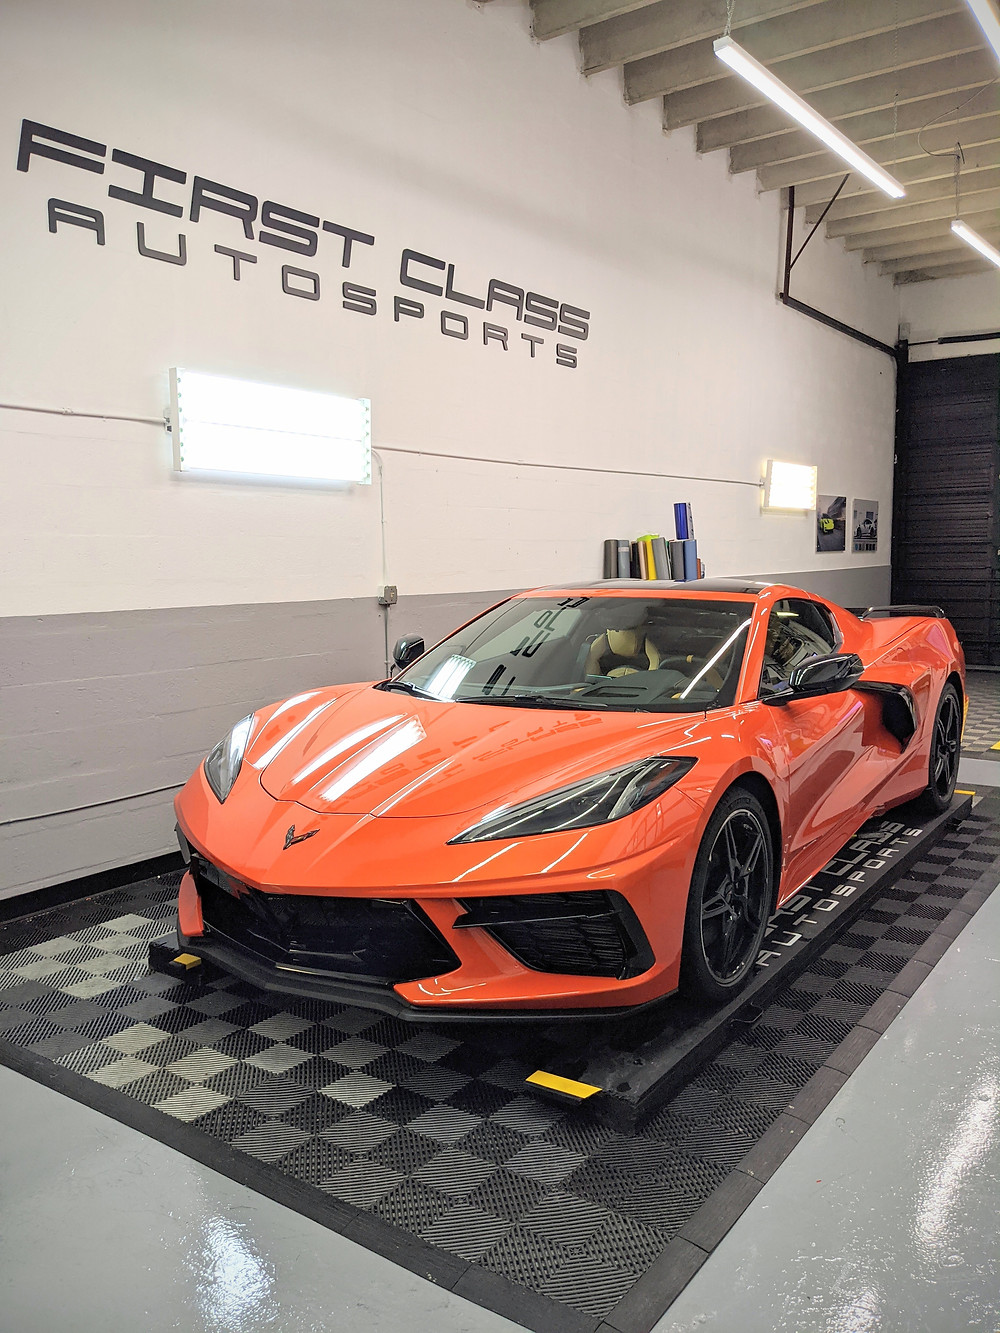 The new Corvette C8 is now here at First Class Autosports Miami for the best protection package